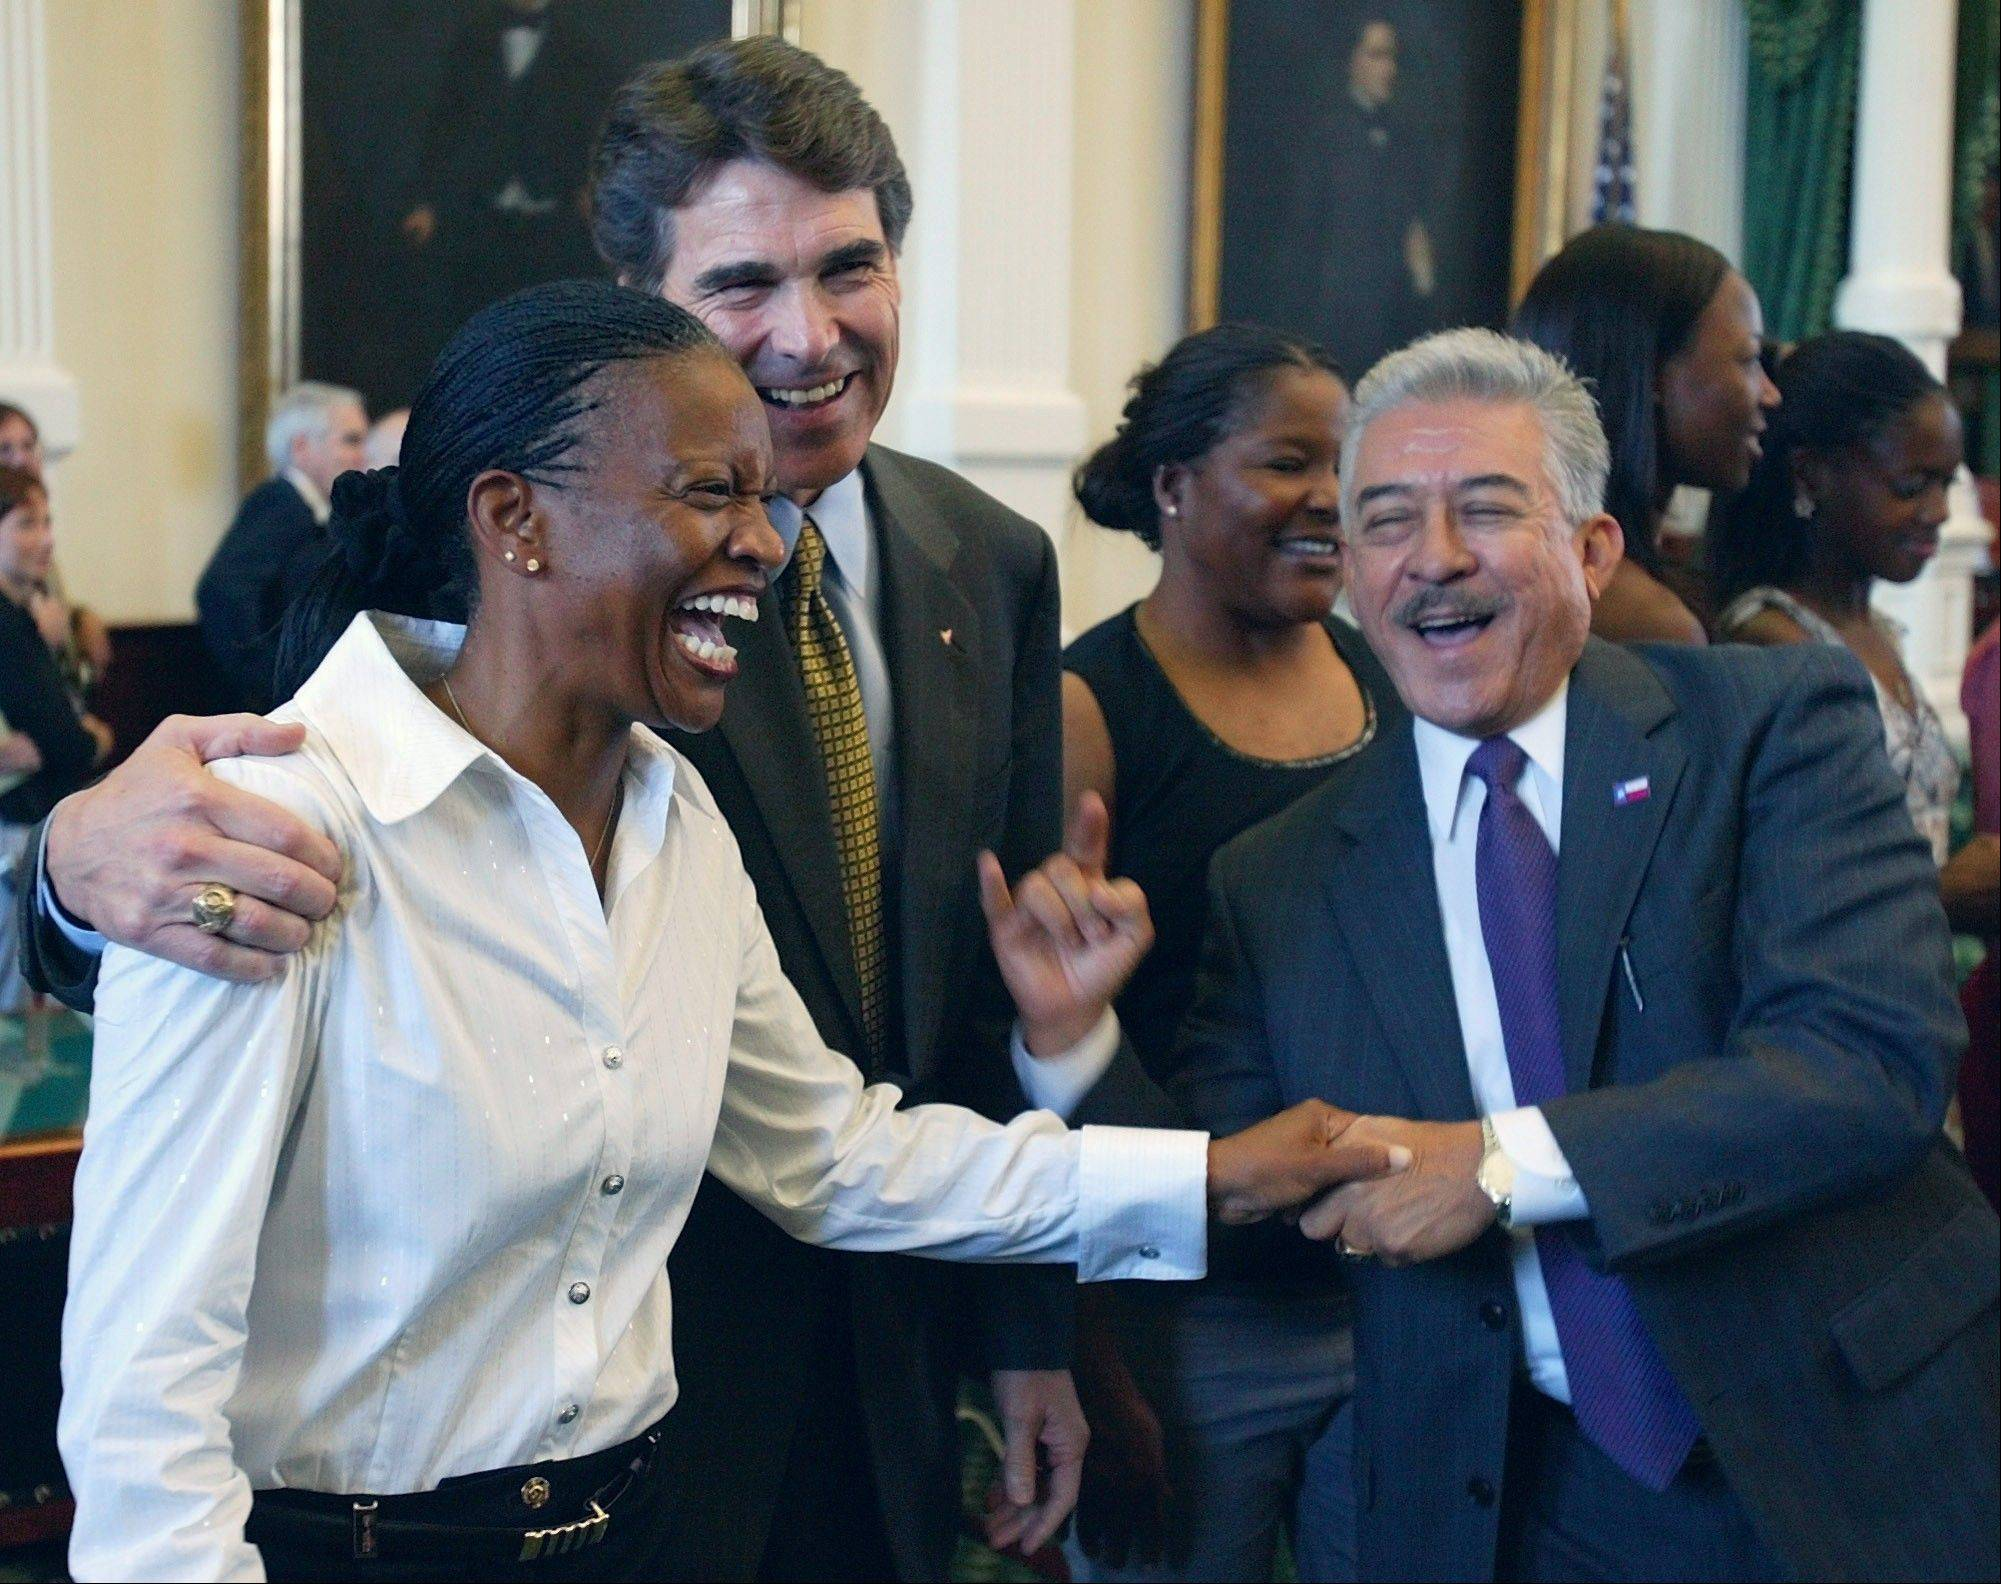 University of Texas women's track coach Bev Kearney, left, shown here being embraced by Texas Gov. Rick Perry during a ceremony to recognize her track team's NCAA championship, has resigned. Kearney admitted to having an intimate relationship with one of her athletes in 2002.